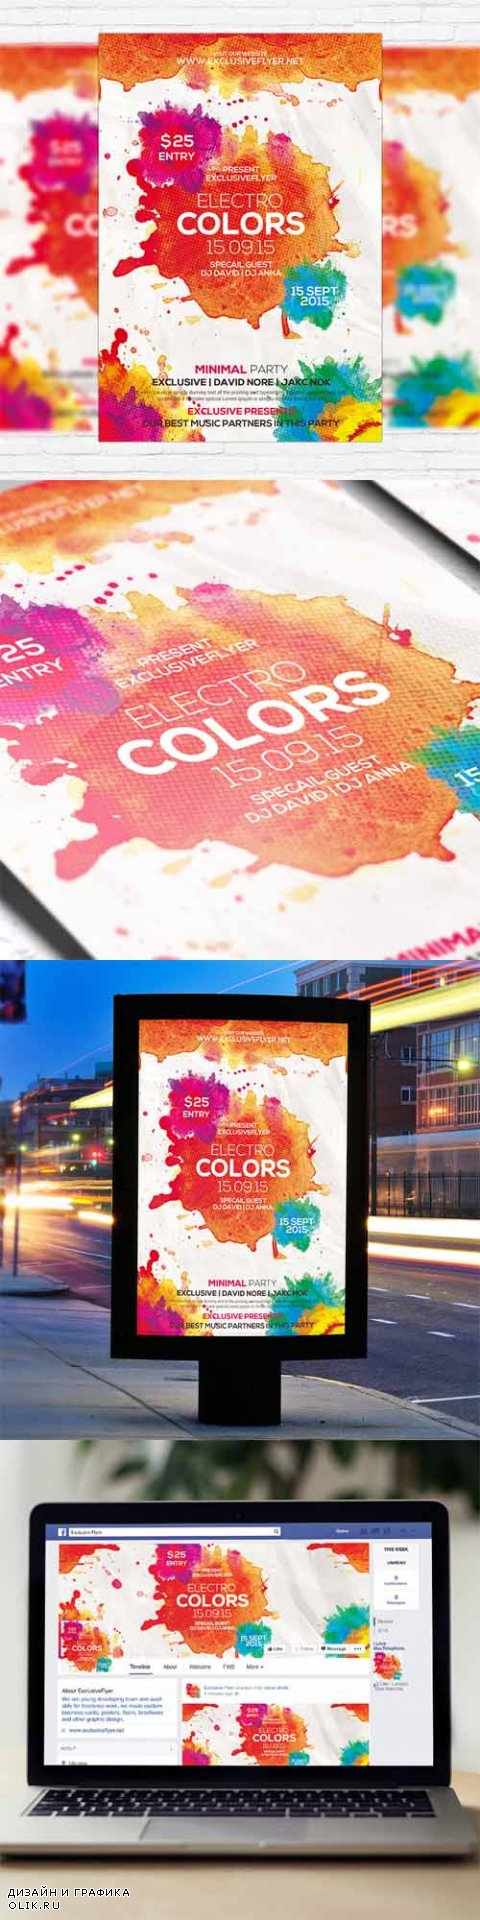 Flyer Template - Electro Colors + Facebook Cover